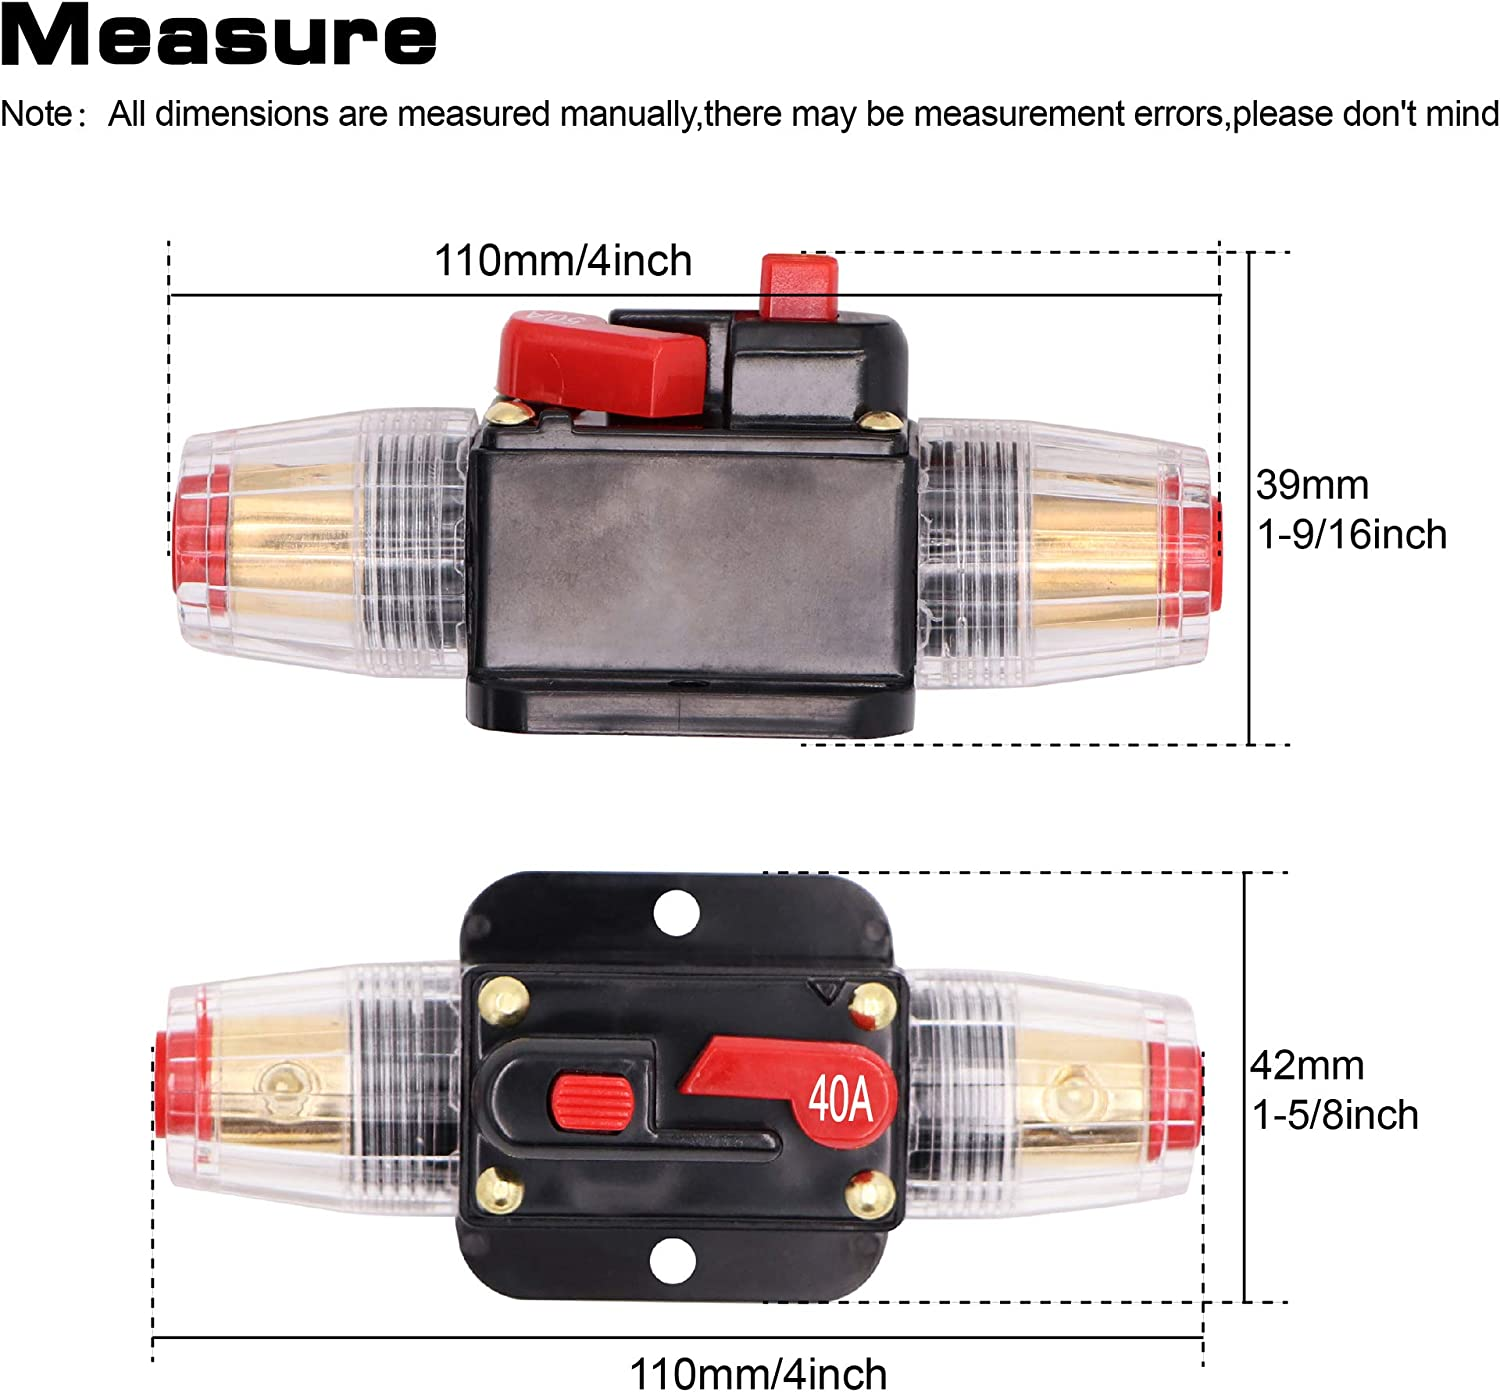 100A Audio Inline Circuit Breaker Reset Fuse 12V-24V DC Stereo Switch and Solar Inverter System PowMr Reset Fuse Holder 100 amp with Manual Reset for Car Audio